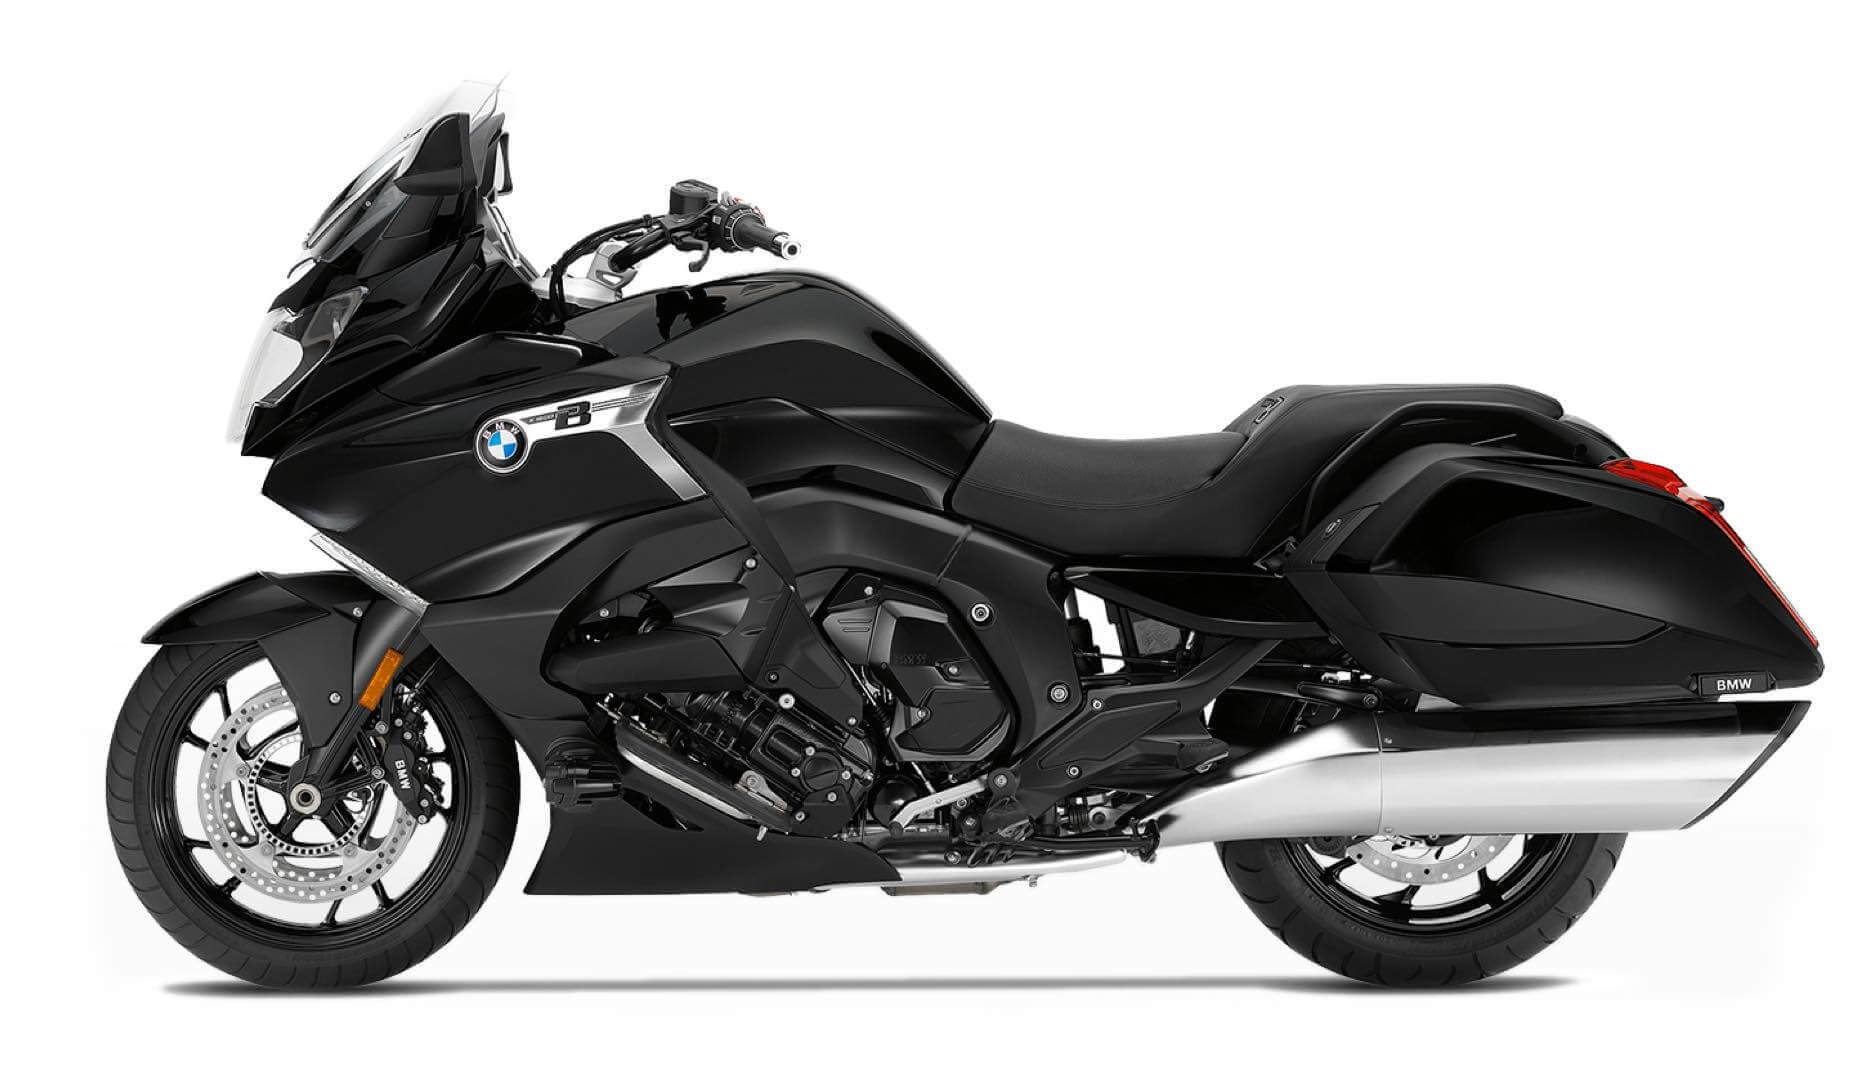 2018 BMW K1600B REVIEW – HIS IMPERIAL MAJESTY - National ...